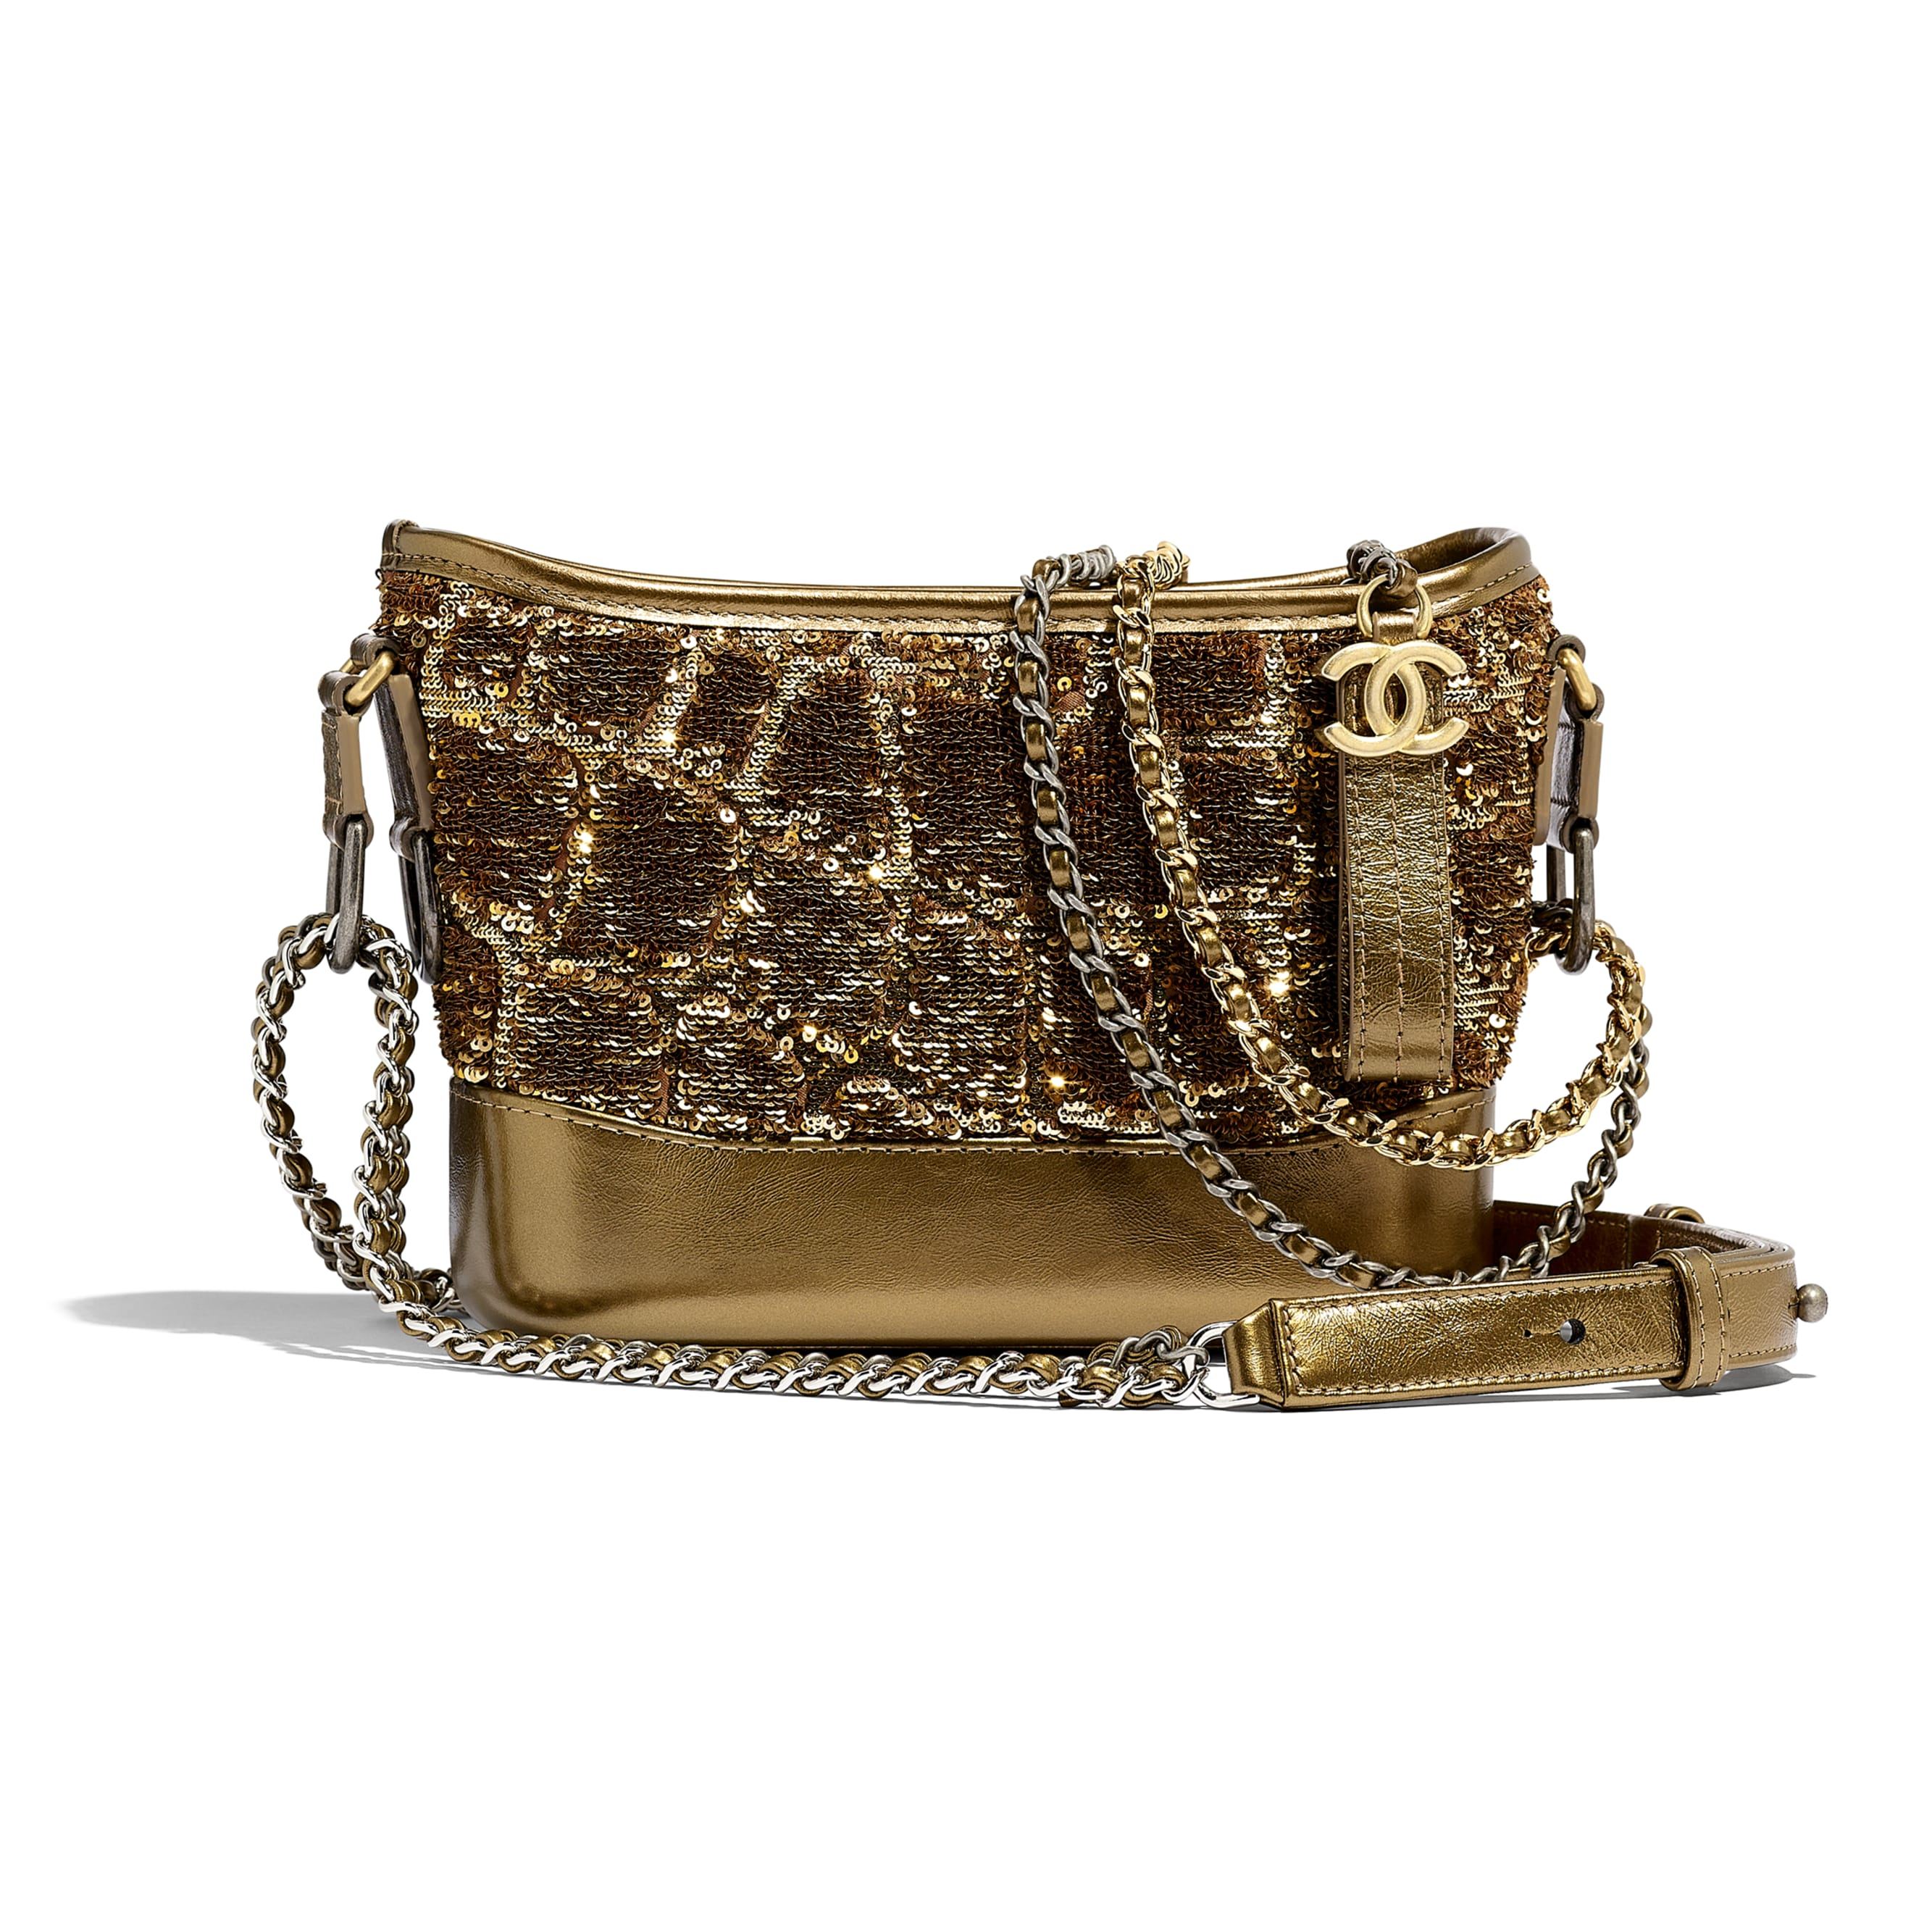 CHANEL'S GABRIELLE Small Hobo Bag - Gold & Copper - Sequins, Calfksin, Silver-Tone & Gold-Tone Metal - Default view - see standard sized version